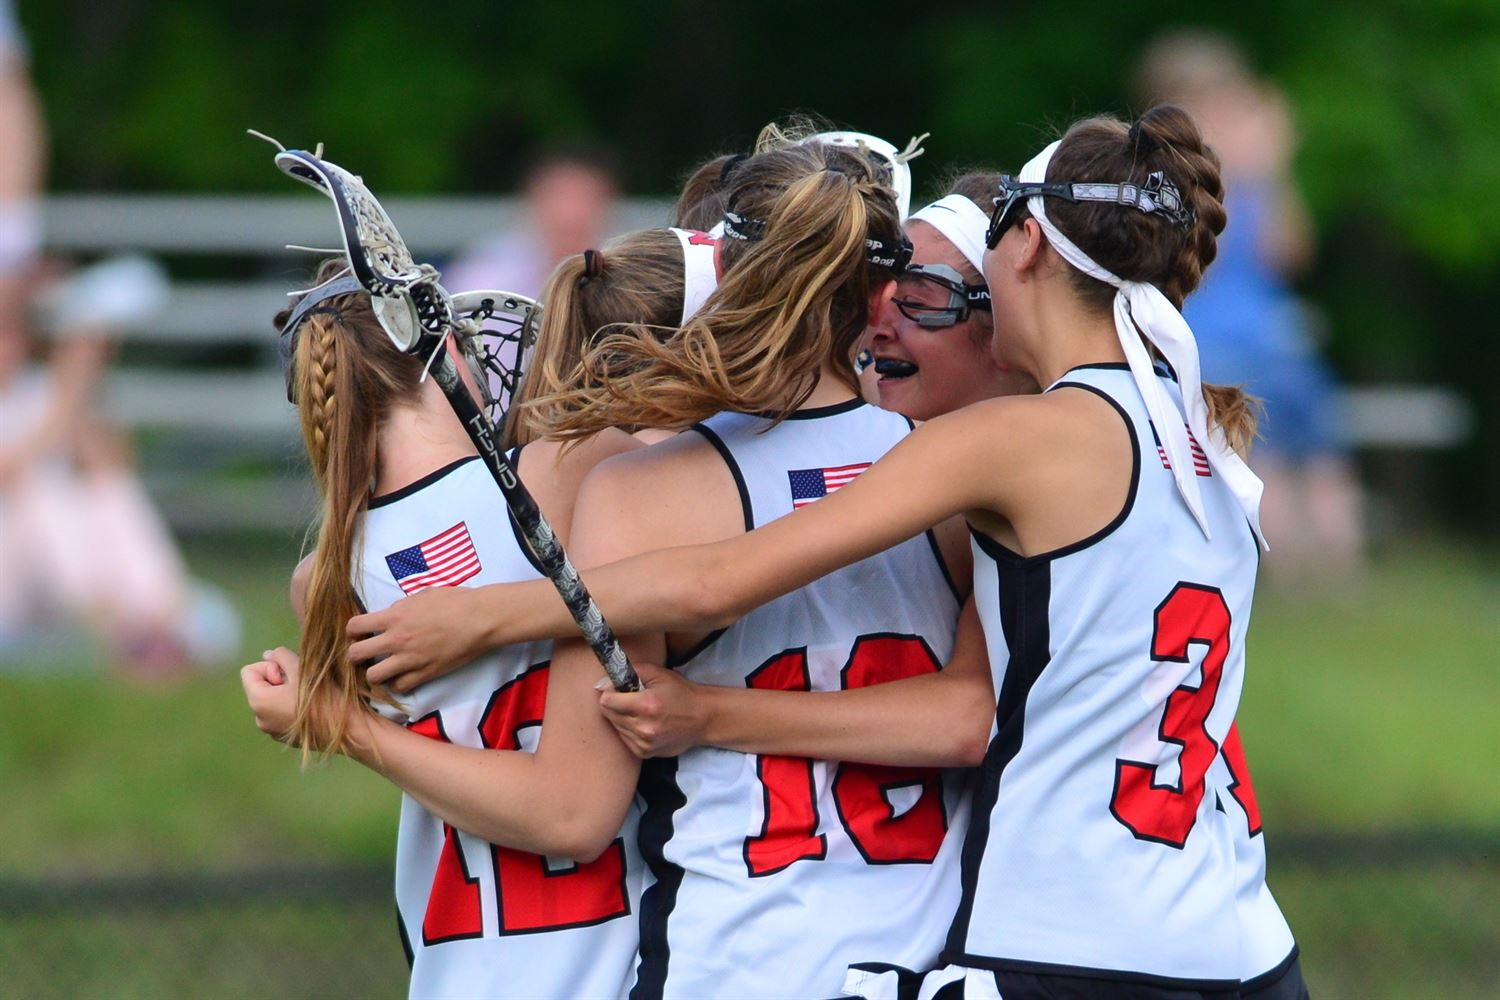 Marblehead High School - Varsity Girls Lacrosse